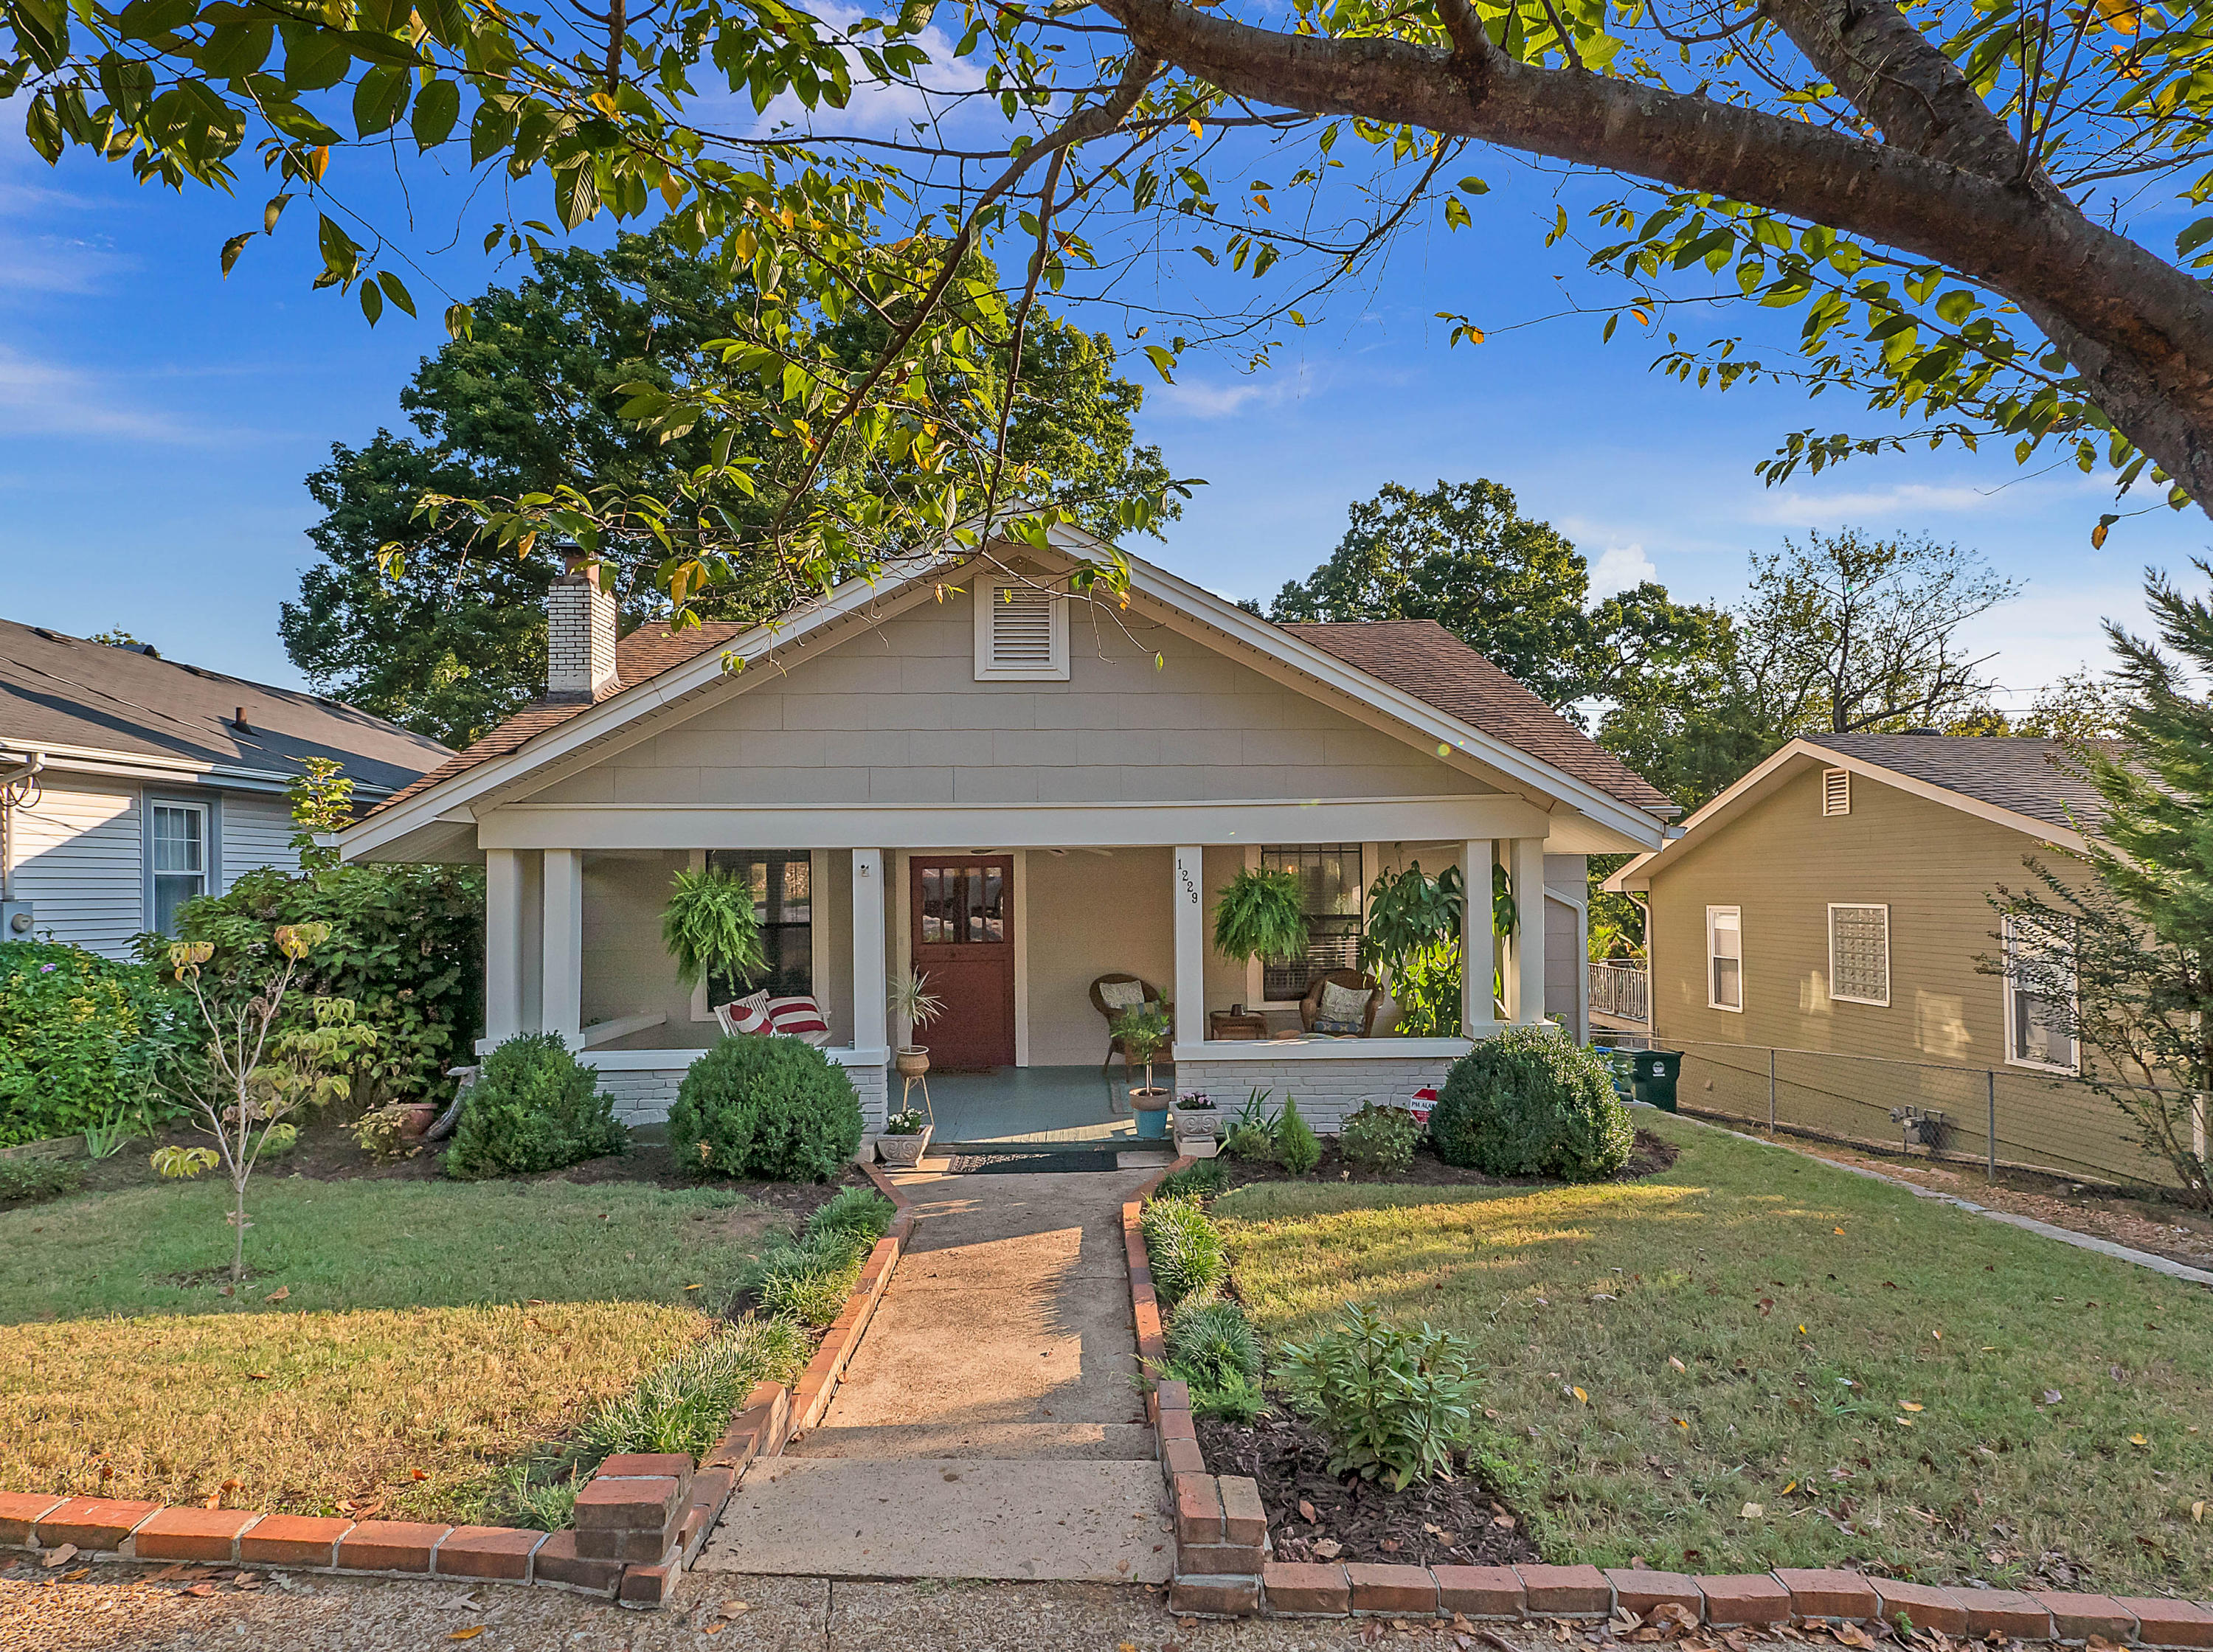 1229  Worthington  St 37405 - One of Chattanooga Homes for Sale